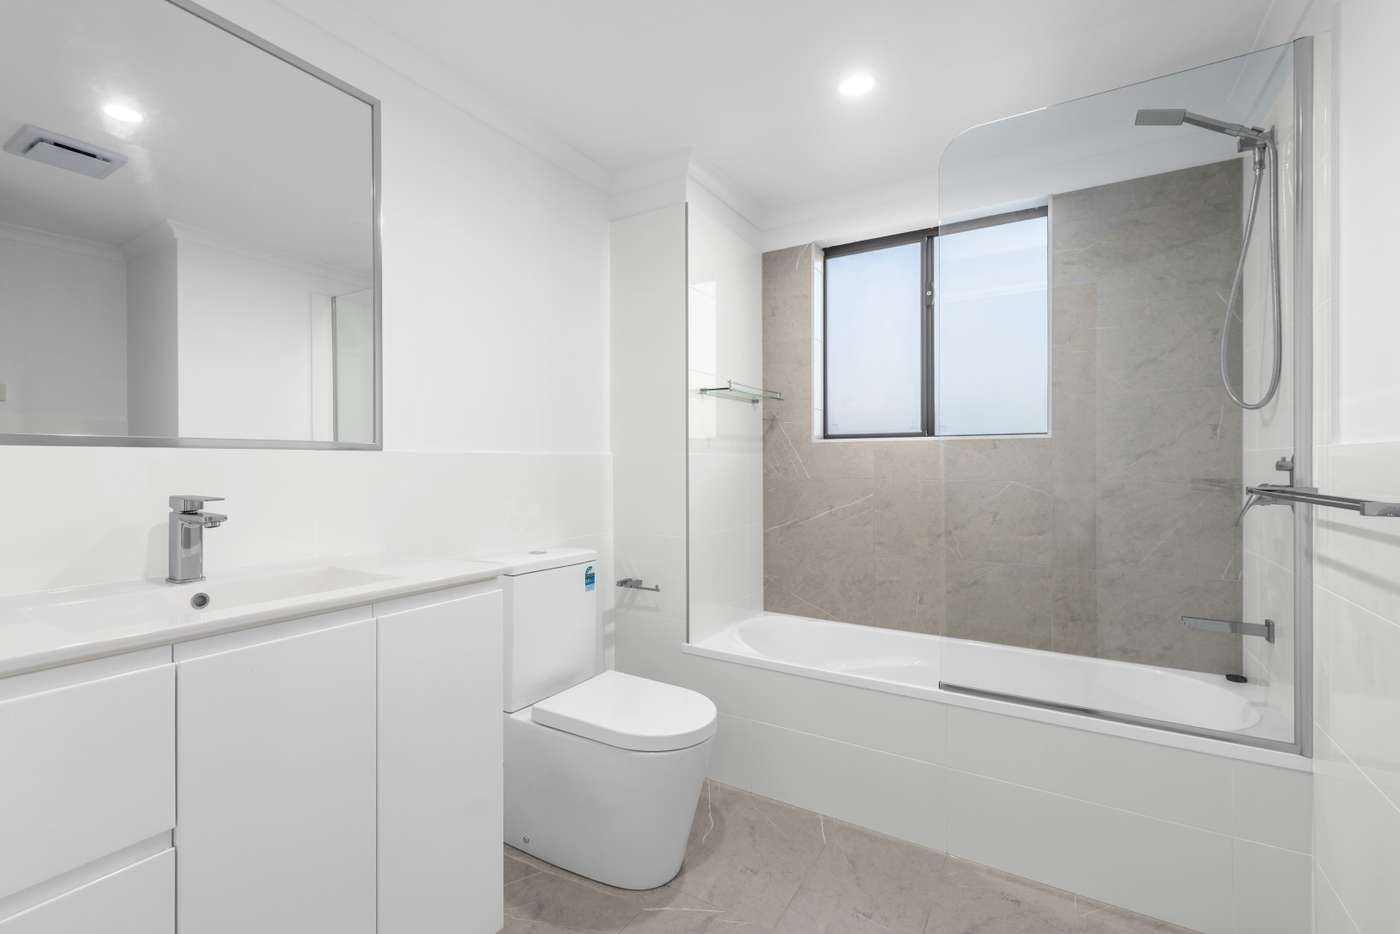 Sixth view of Homely apartment listing, 2/7 Glasgow Street, Zillmere QLD 4034